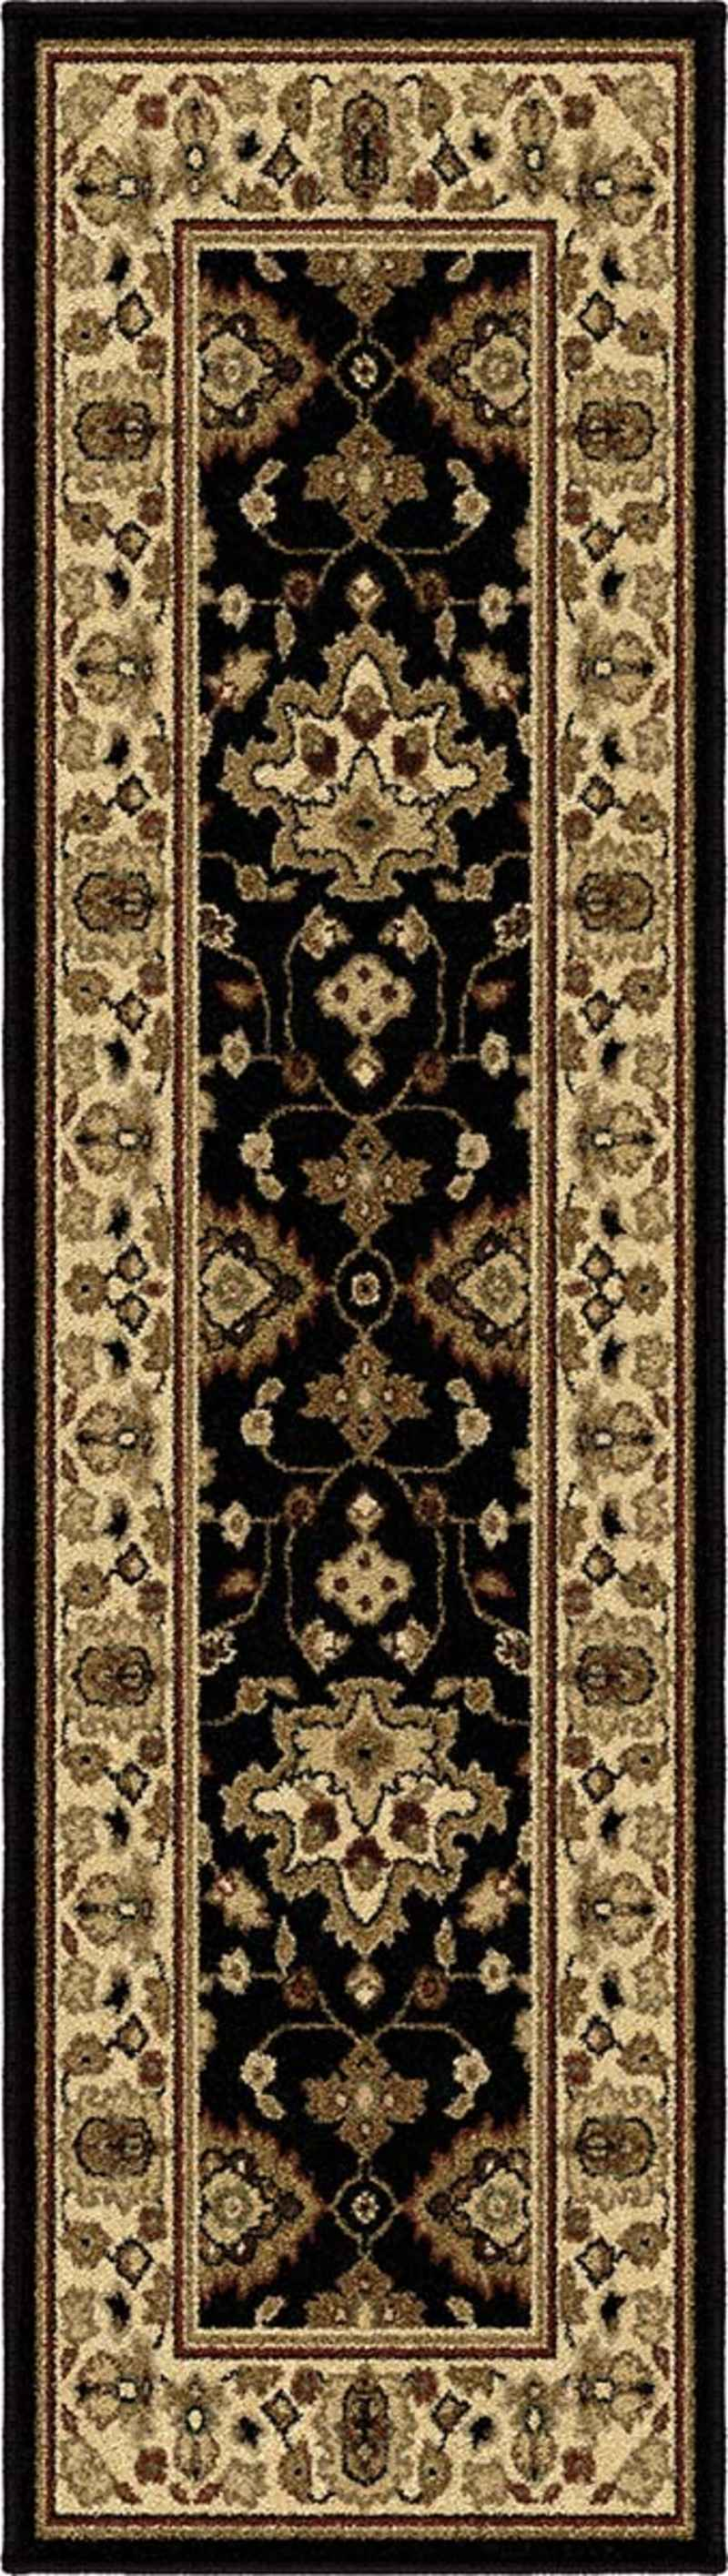 Cool Orian Rugs In Black Floral Pattern And Rectangle Shape For Floor Decor Ideas